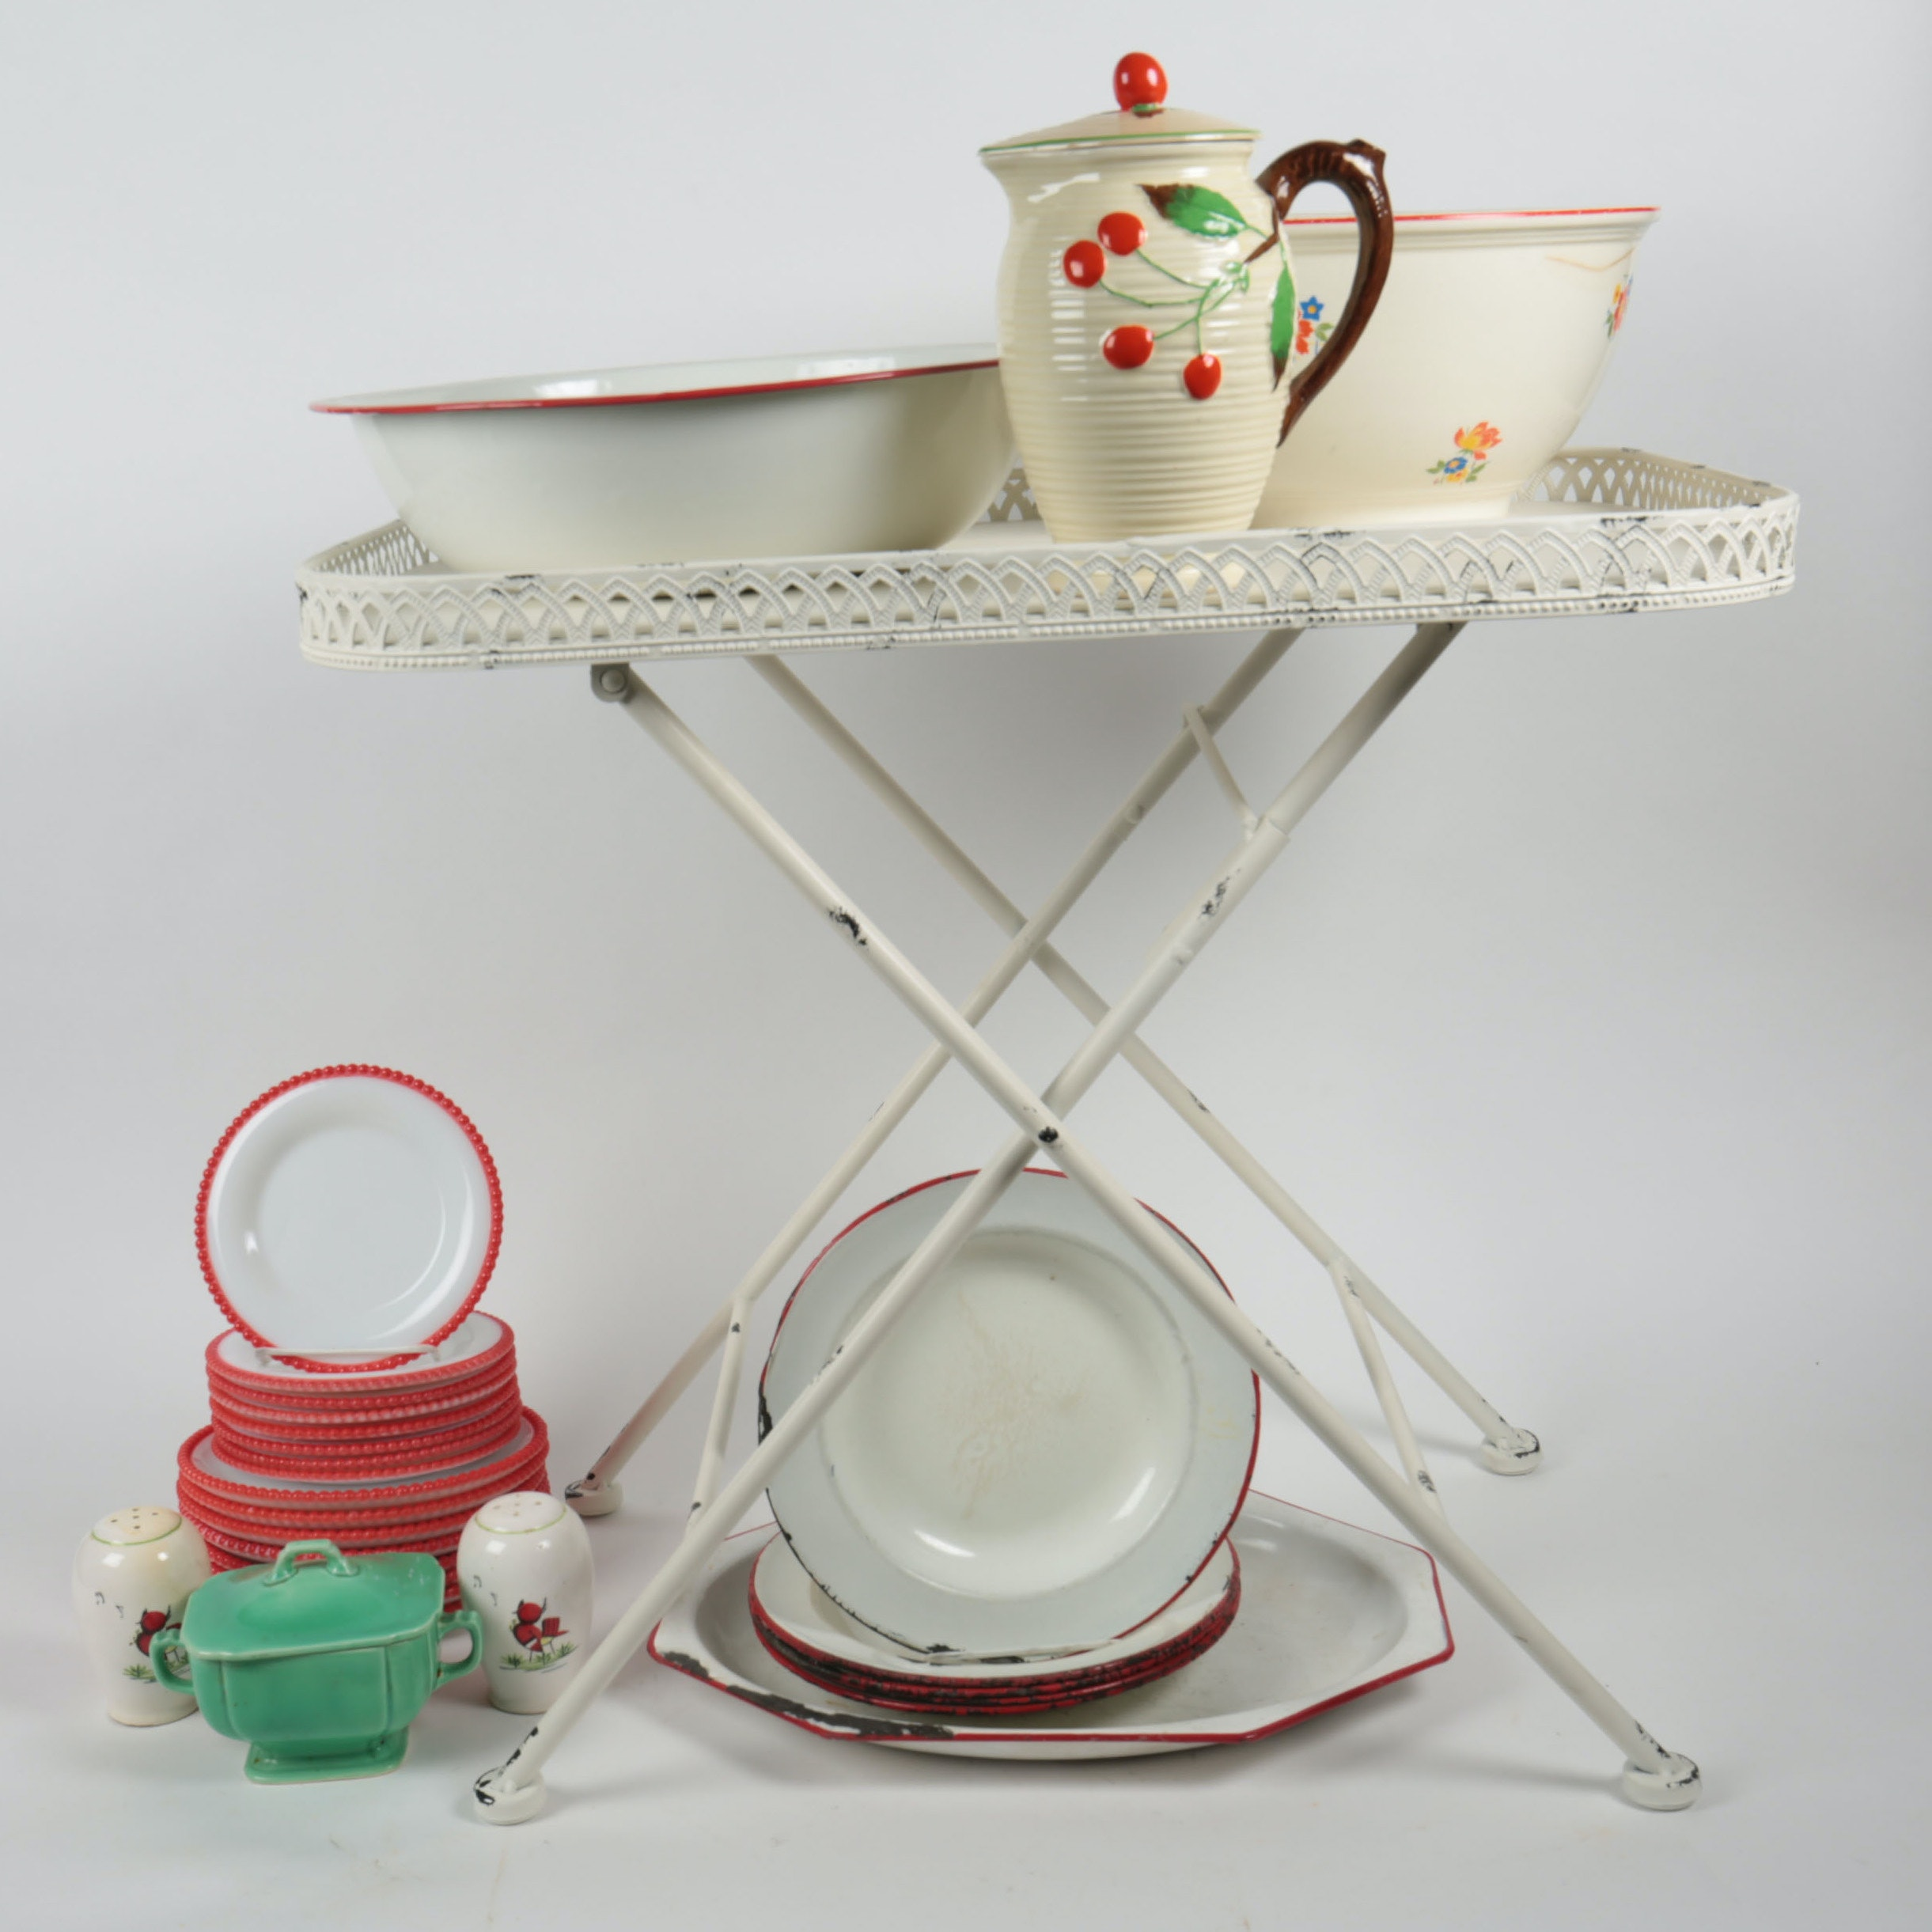 Variety of Vintage Serving Ware and a Folding Table